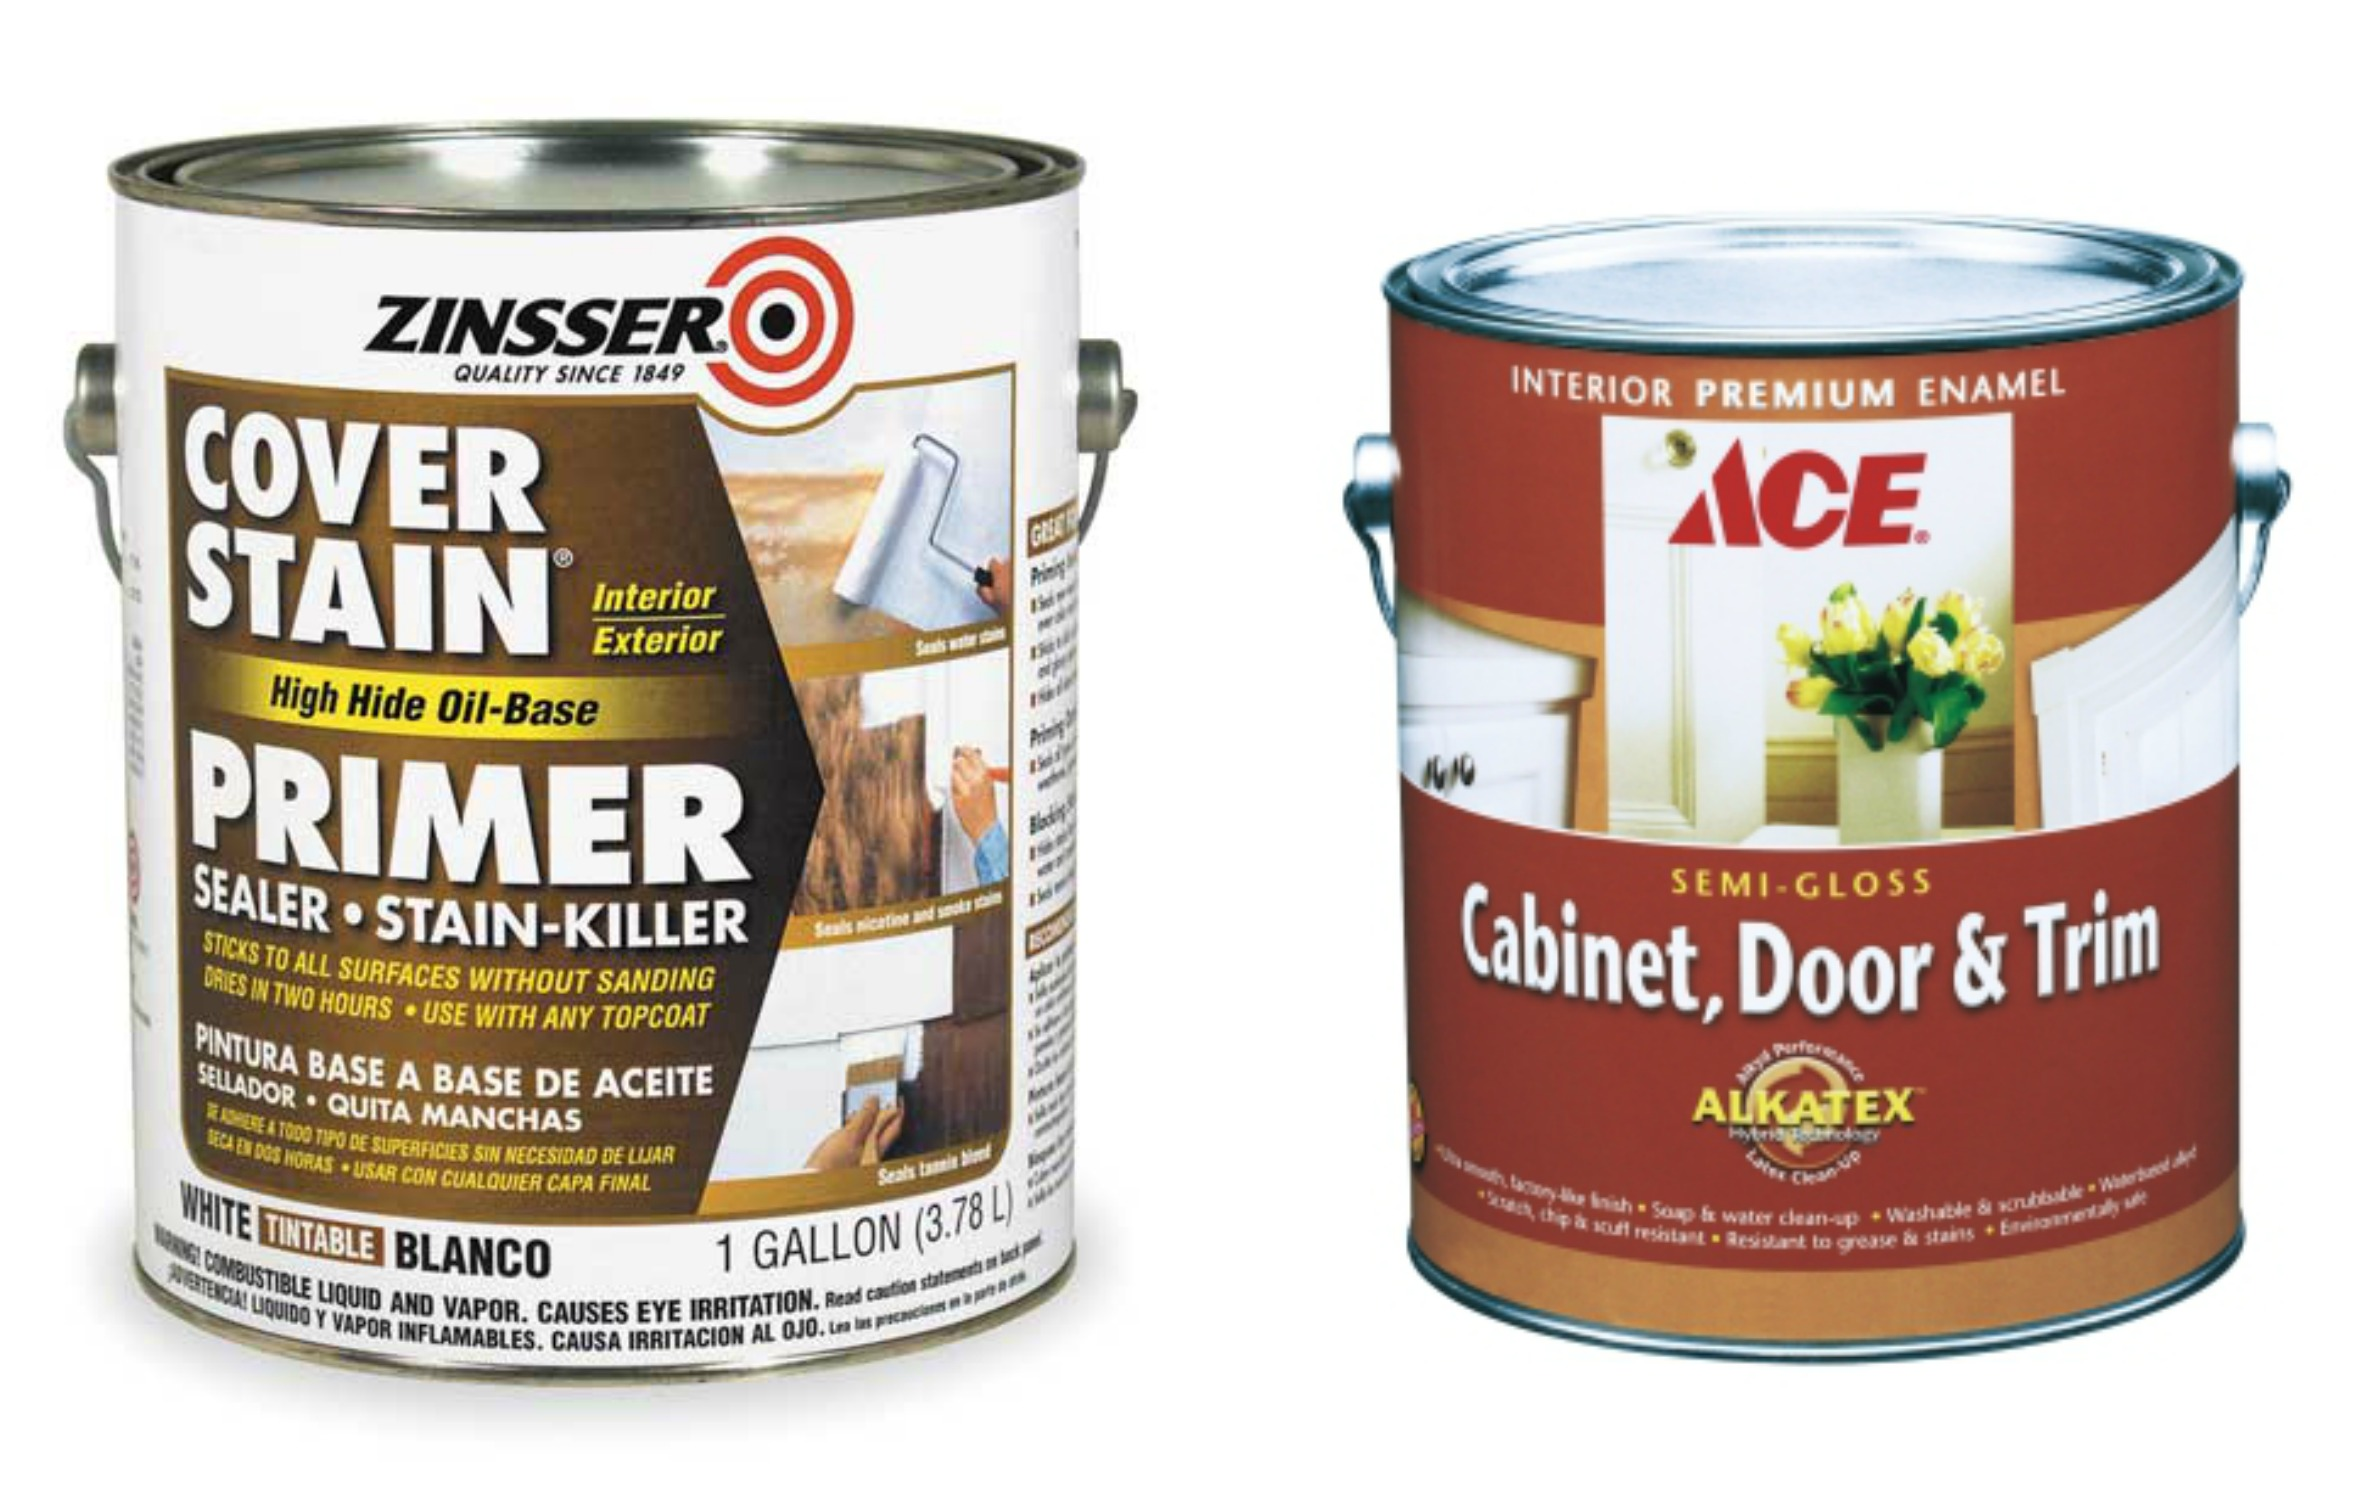 A DIY Project: Painting Your Kitchen Cabinets